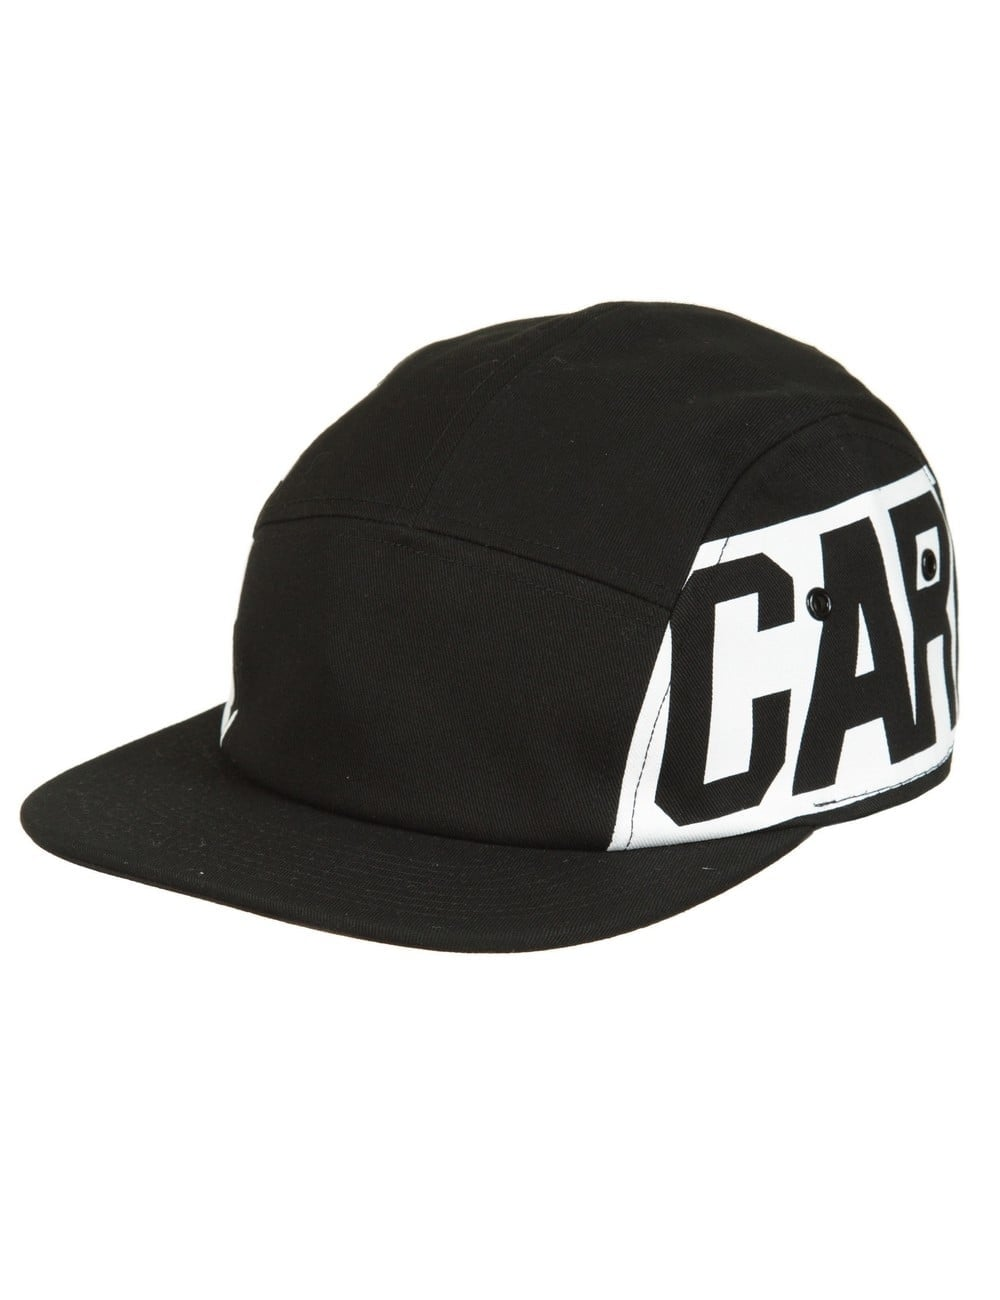 ca377ebc63bb0 Carhartt WIP Script Starter 5 Panel Cap - Black White - Hat Shop ...